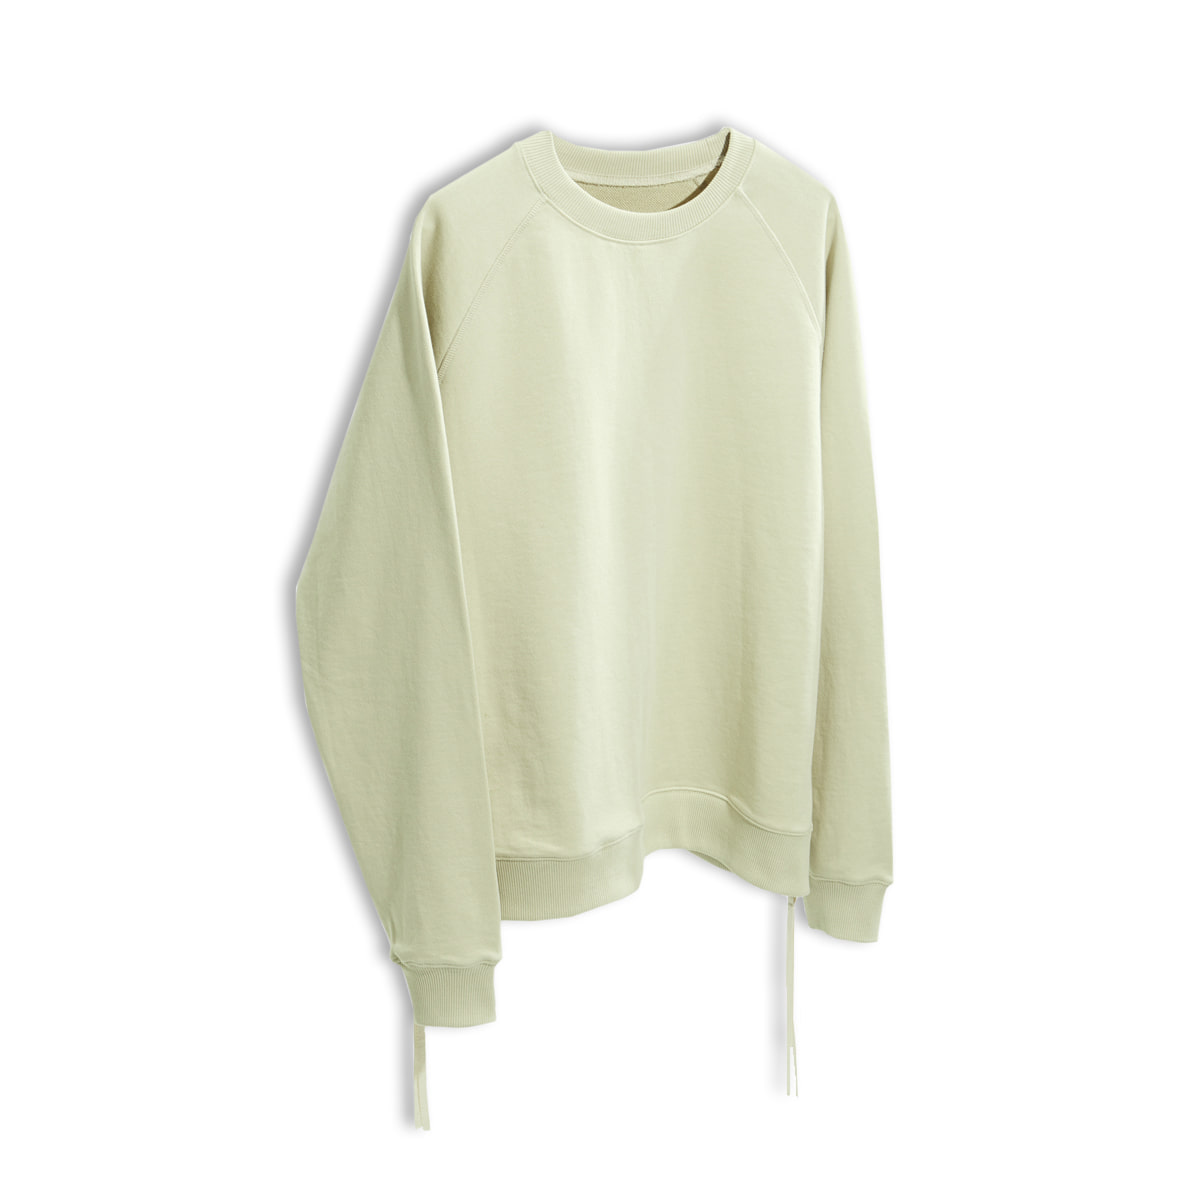 [YOUTH] SIDE ZIP-UP SWEATSHIRT 'IVORY'